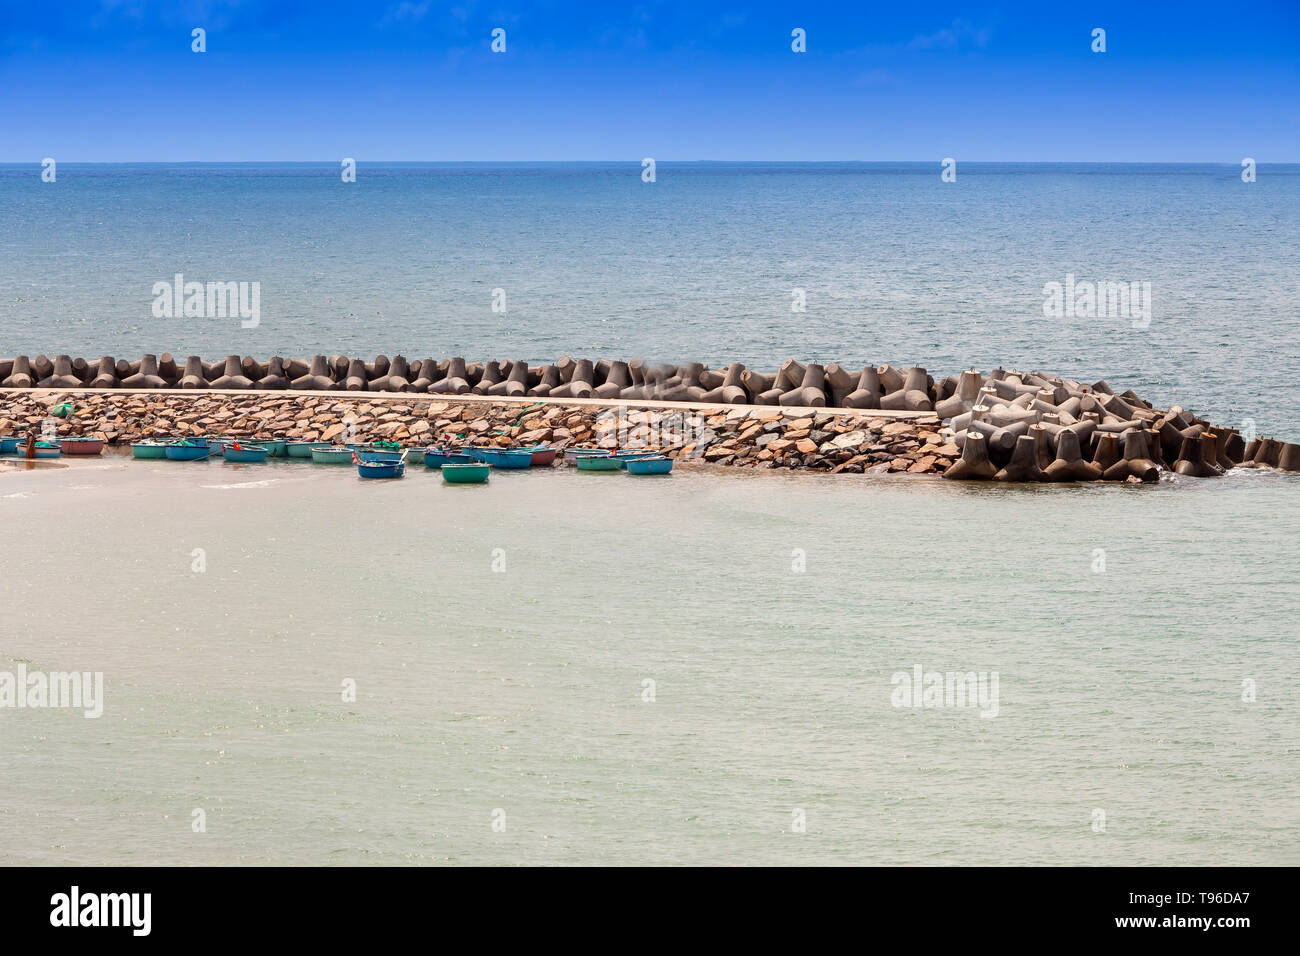 Round boats in the harbor of Phan Thiet,south china sea, Vietnam, Asia - Stock Image